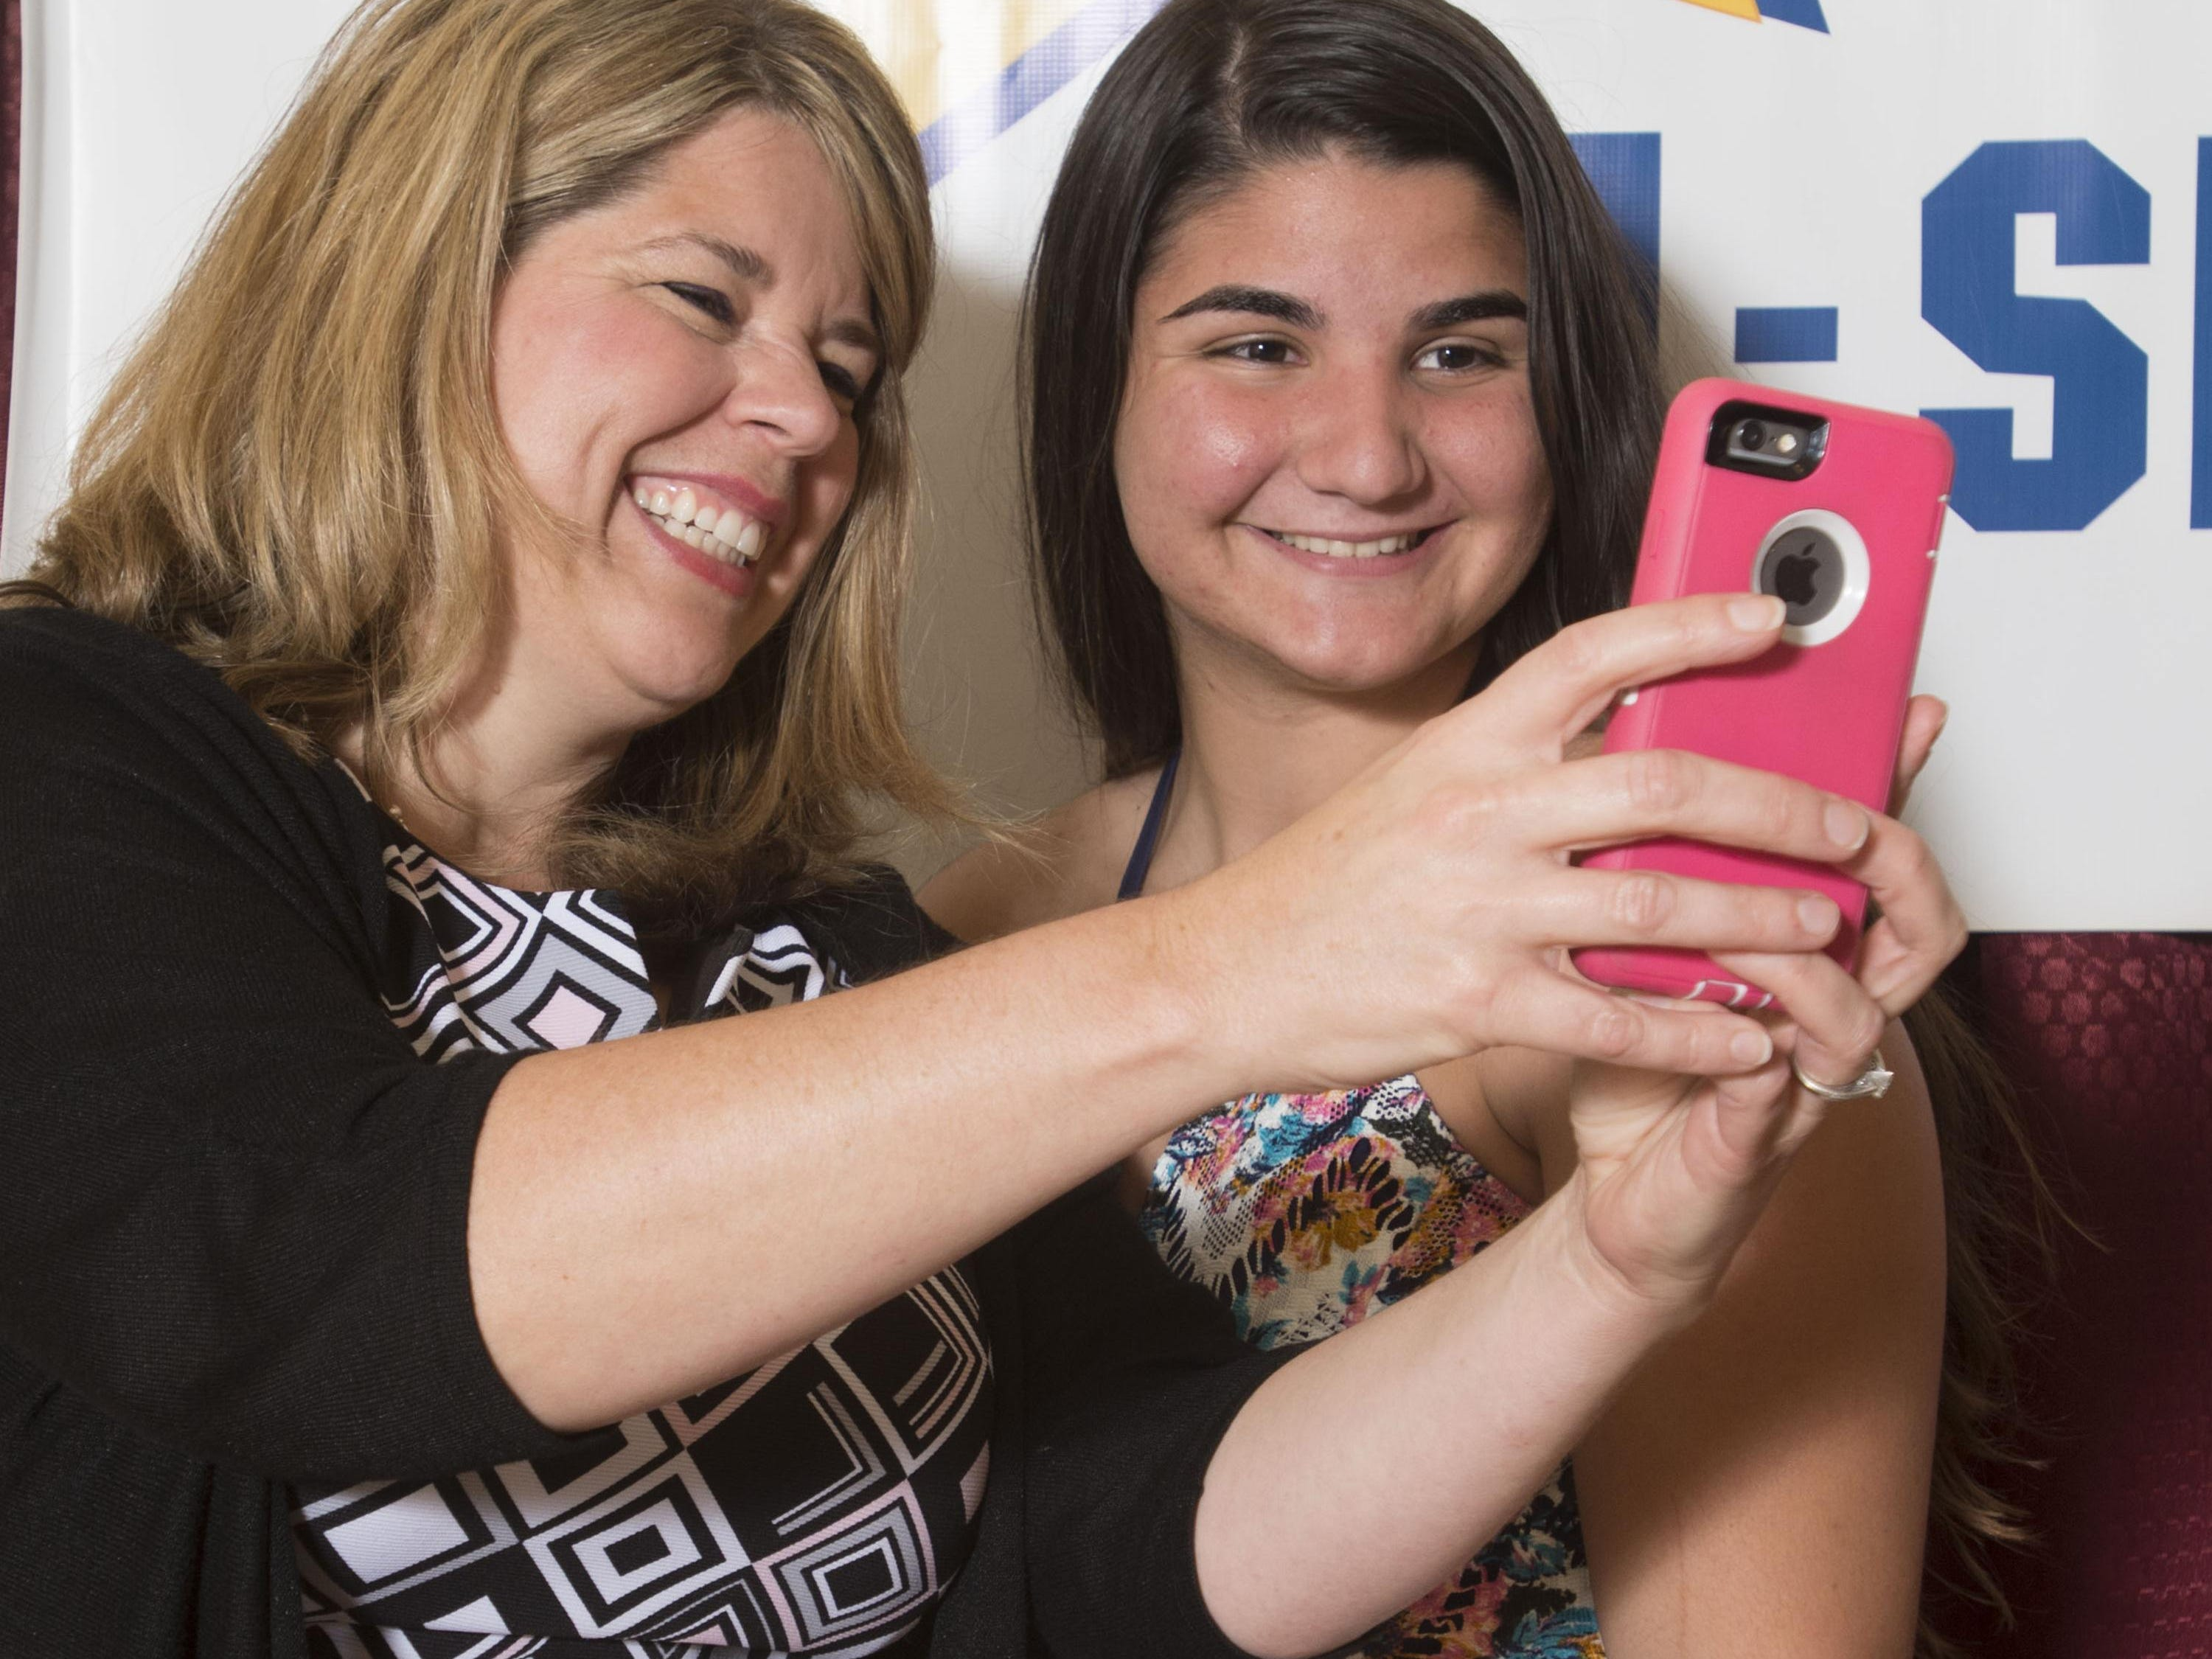 Attorney Kim Adams, left, takes a selfie with Olivia Brahms, right, the female Troy Rafferty Scholarship winner, during the Pensacola News Journal All-Sport Awards Banquet Wednesday night.